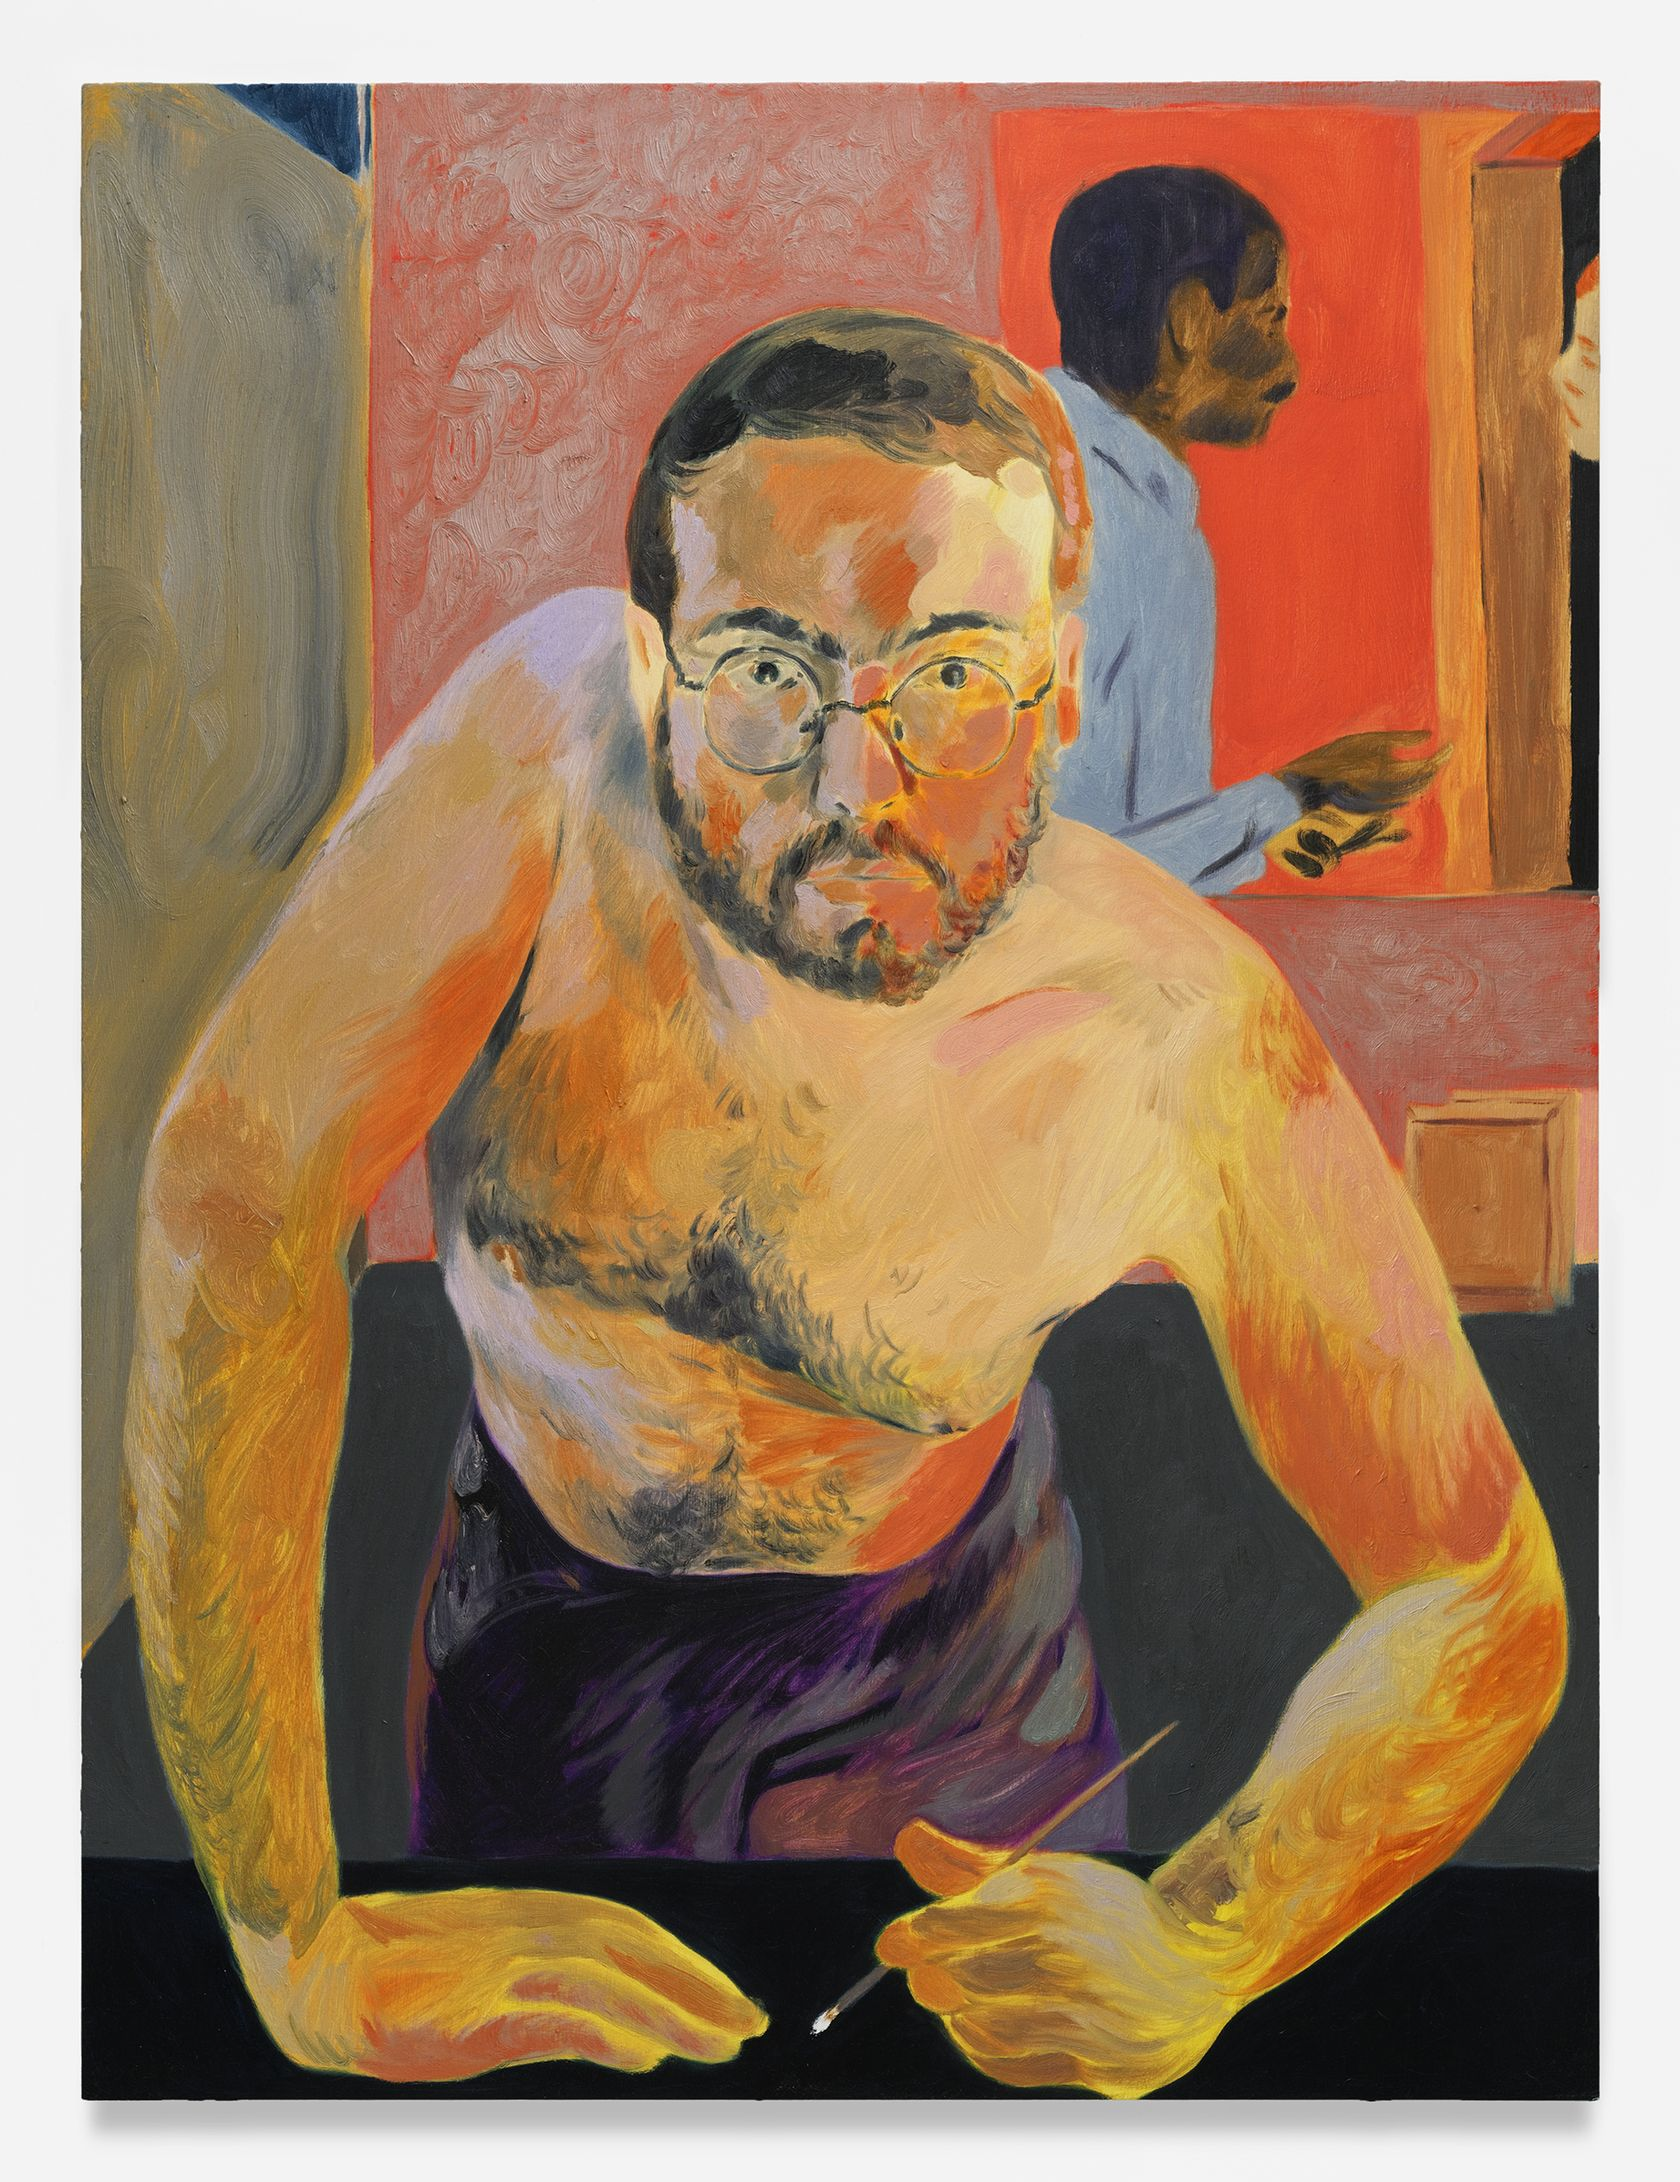 Anthony Cudahy, Self-portrait after Hockney '83, 2021 Huile sur toile122 × 91 cm / 48 × 36 in.